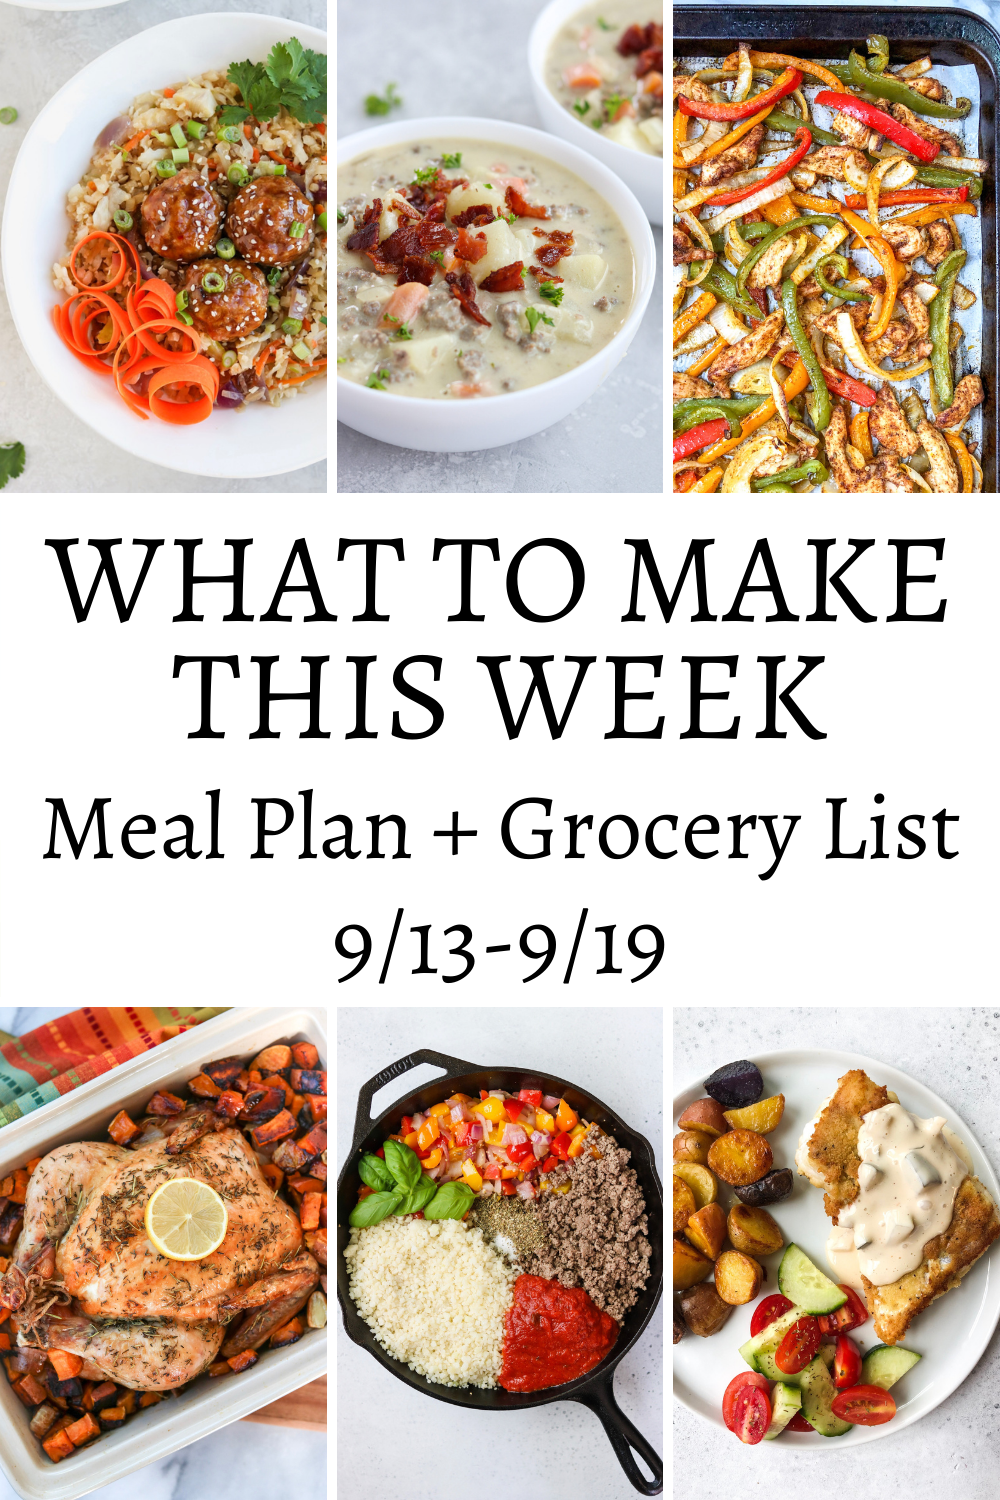 What To Make This Week – 9/13-9/19